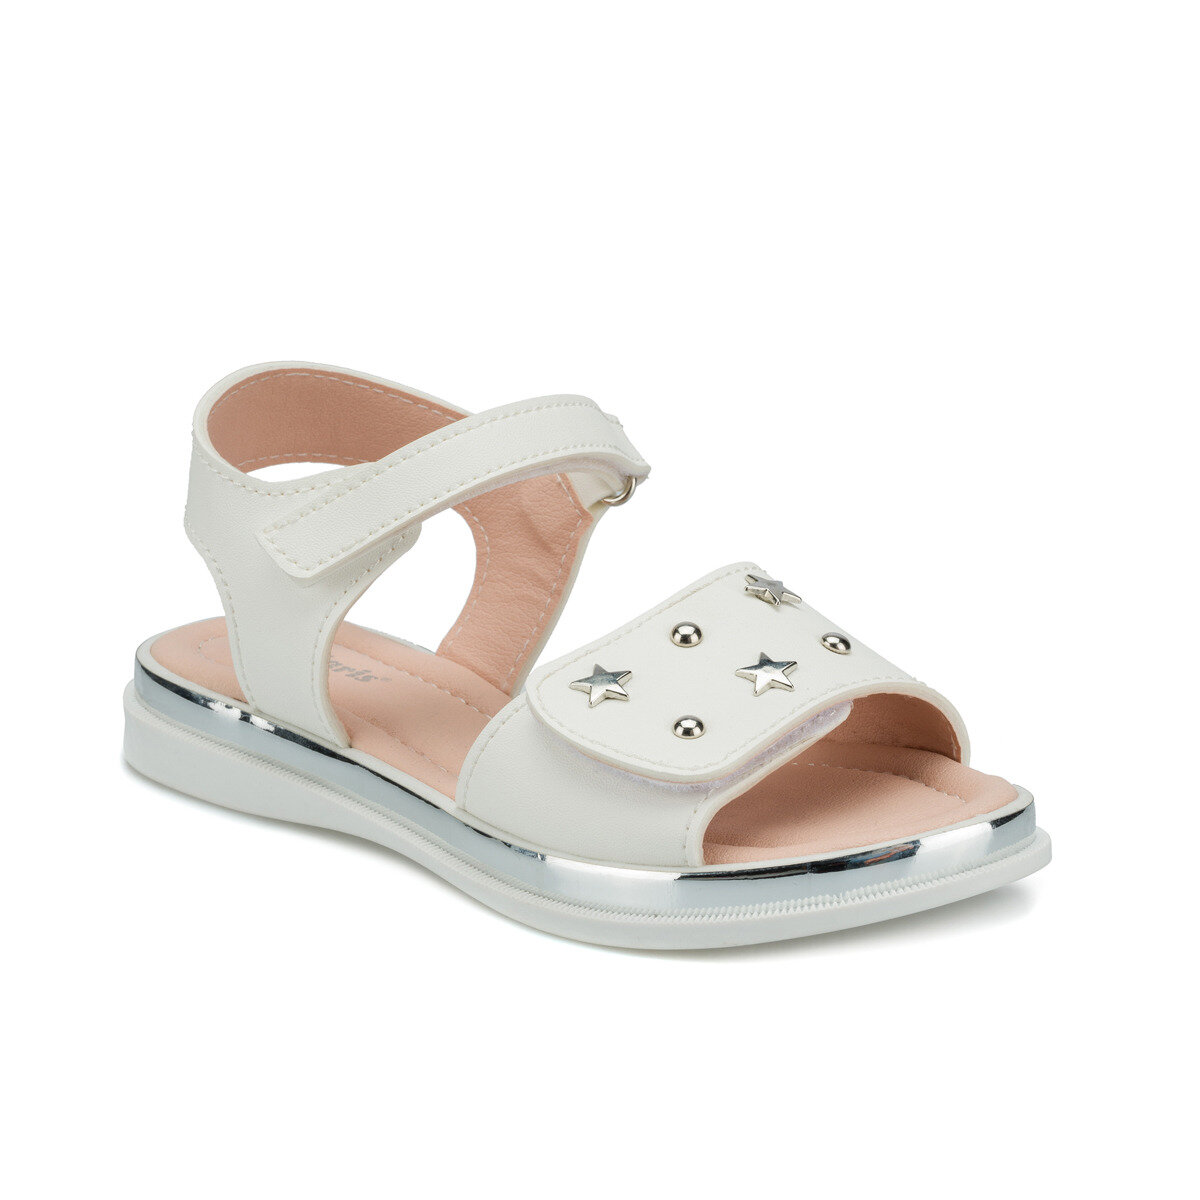 FLO 512490.F White Female Child Sandals Polaris